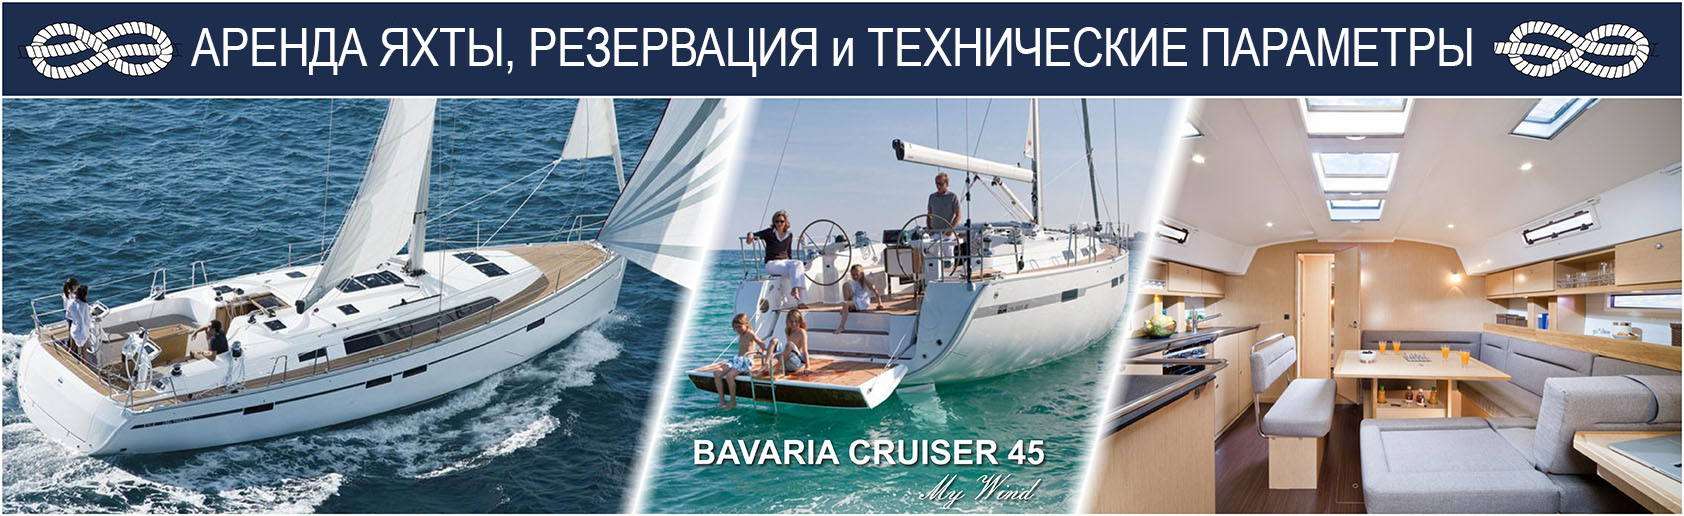 my wind bavaria cruiser 45